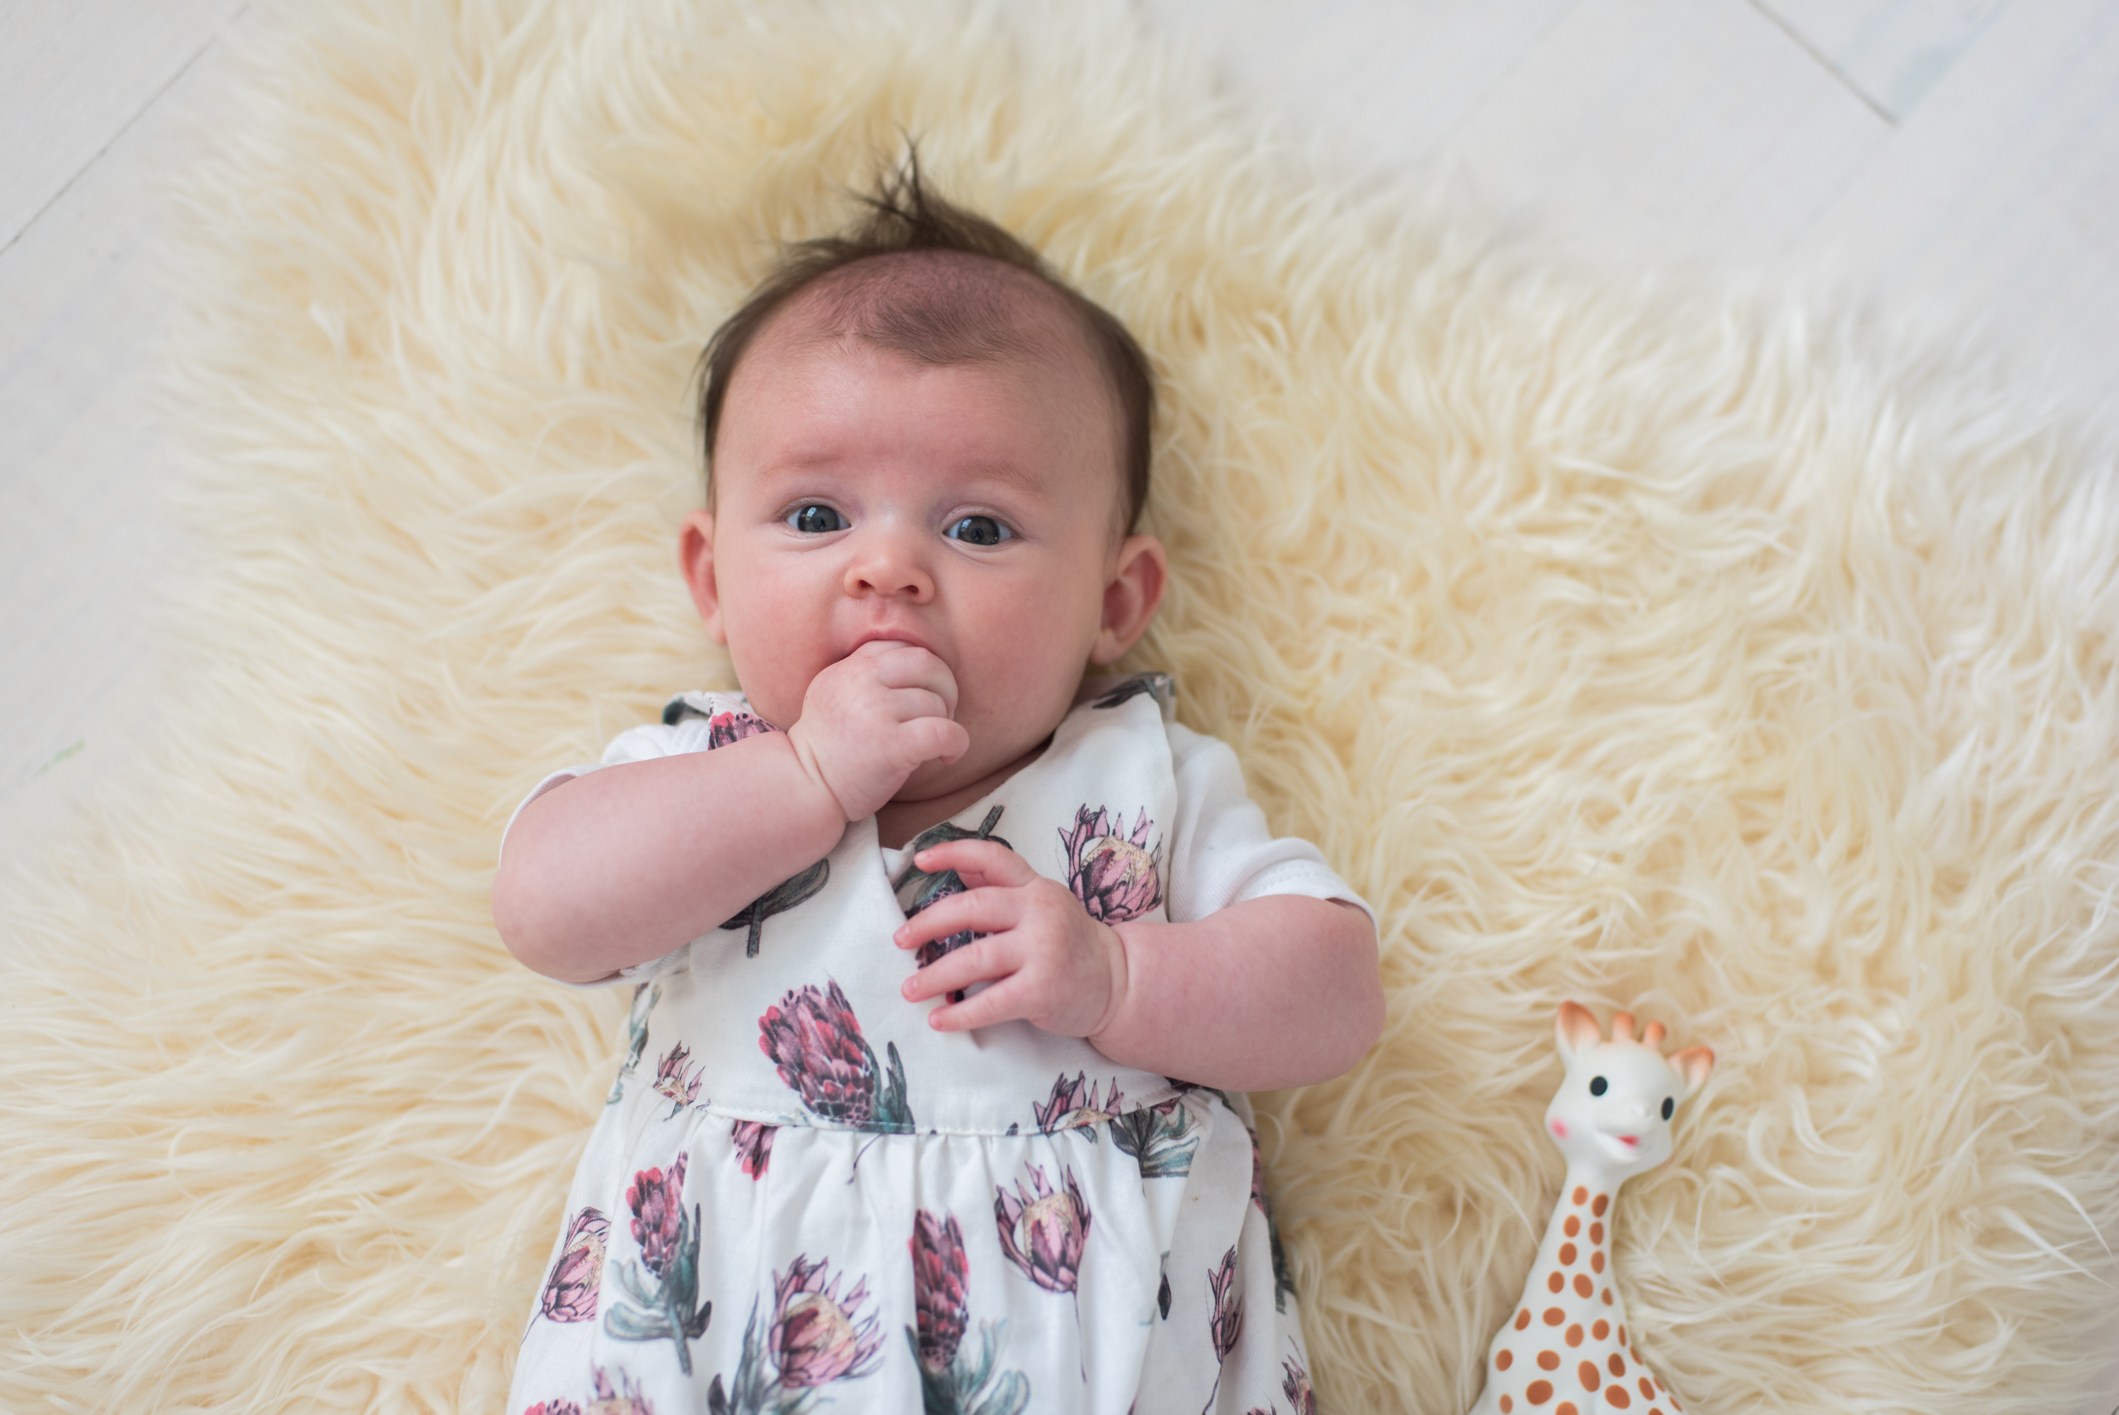 3 month baby 15 week sleep regression life with a baby by CityGirlSearching